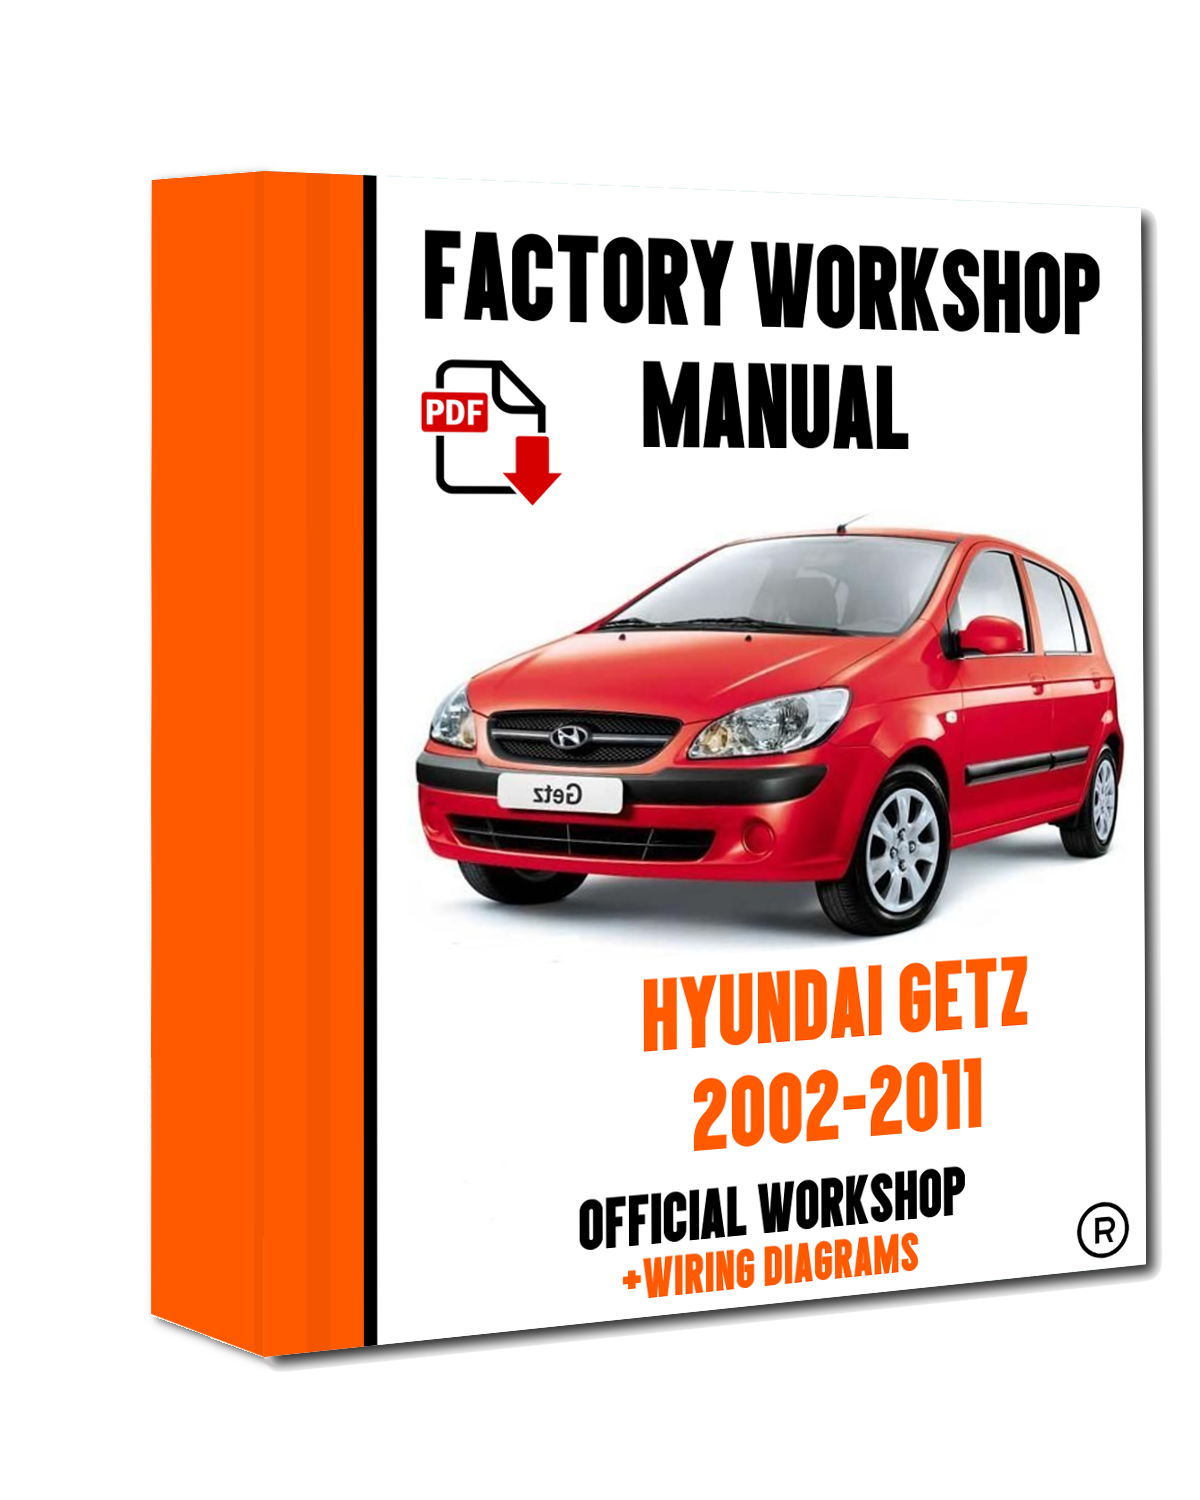 OFFICIAL WORKSHOP Manual Service Repair Hyundai Getz 2002 ... on 3930 ford tractor parts diagrams, club car manuals and diagrams, custom stereo diagrams, car vacuum diagrams, dodge ram vacuum diagrams, chevy truck diagrams, car starting system, car battery, pinout diagrams, car exhaust, car schematics, autozone repair diagrams, factory car stereo diagrams, car motors diagrams, car door lock diagram, club car manual wire diagrams, battery diagrams, car electrical, car parts diagrams, 7.3 ford diesel diagrams,